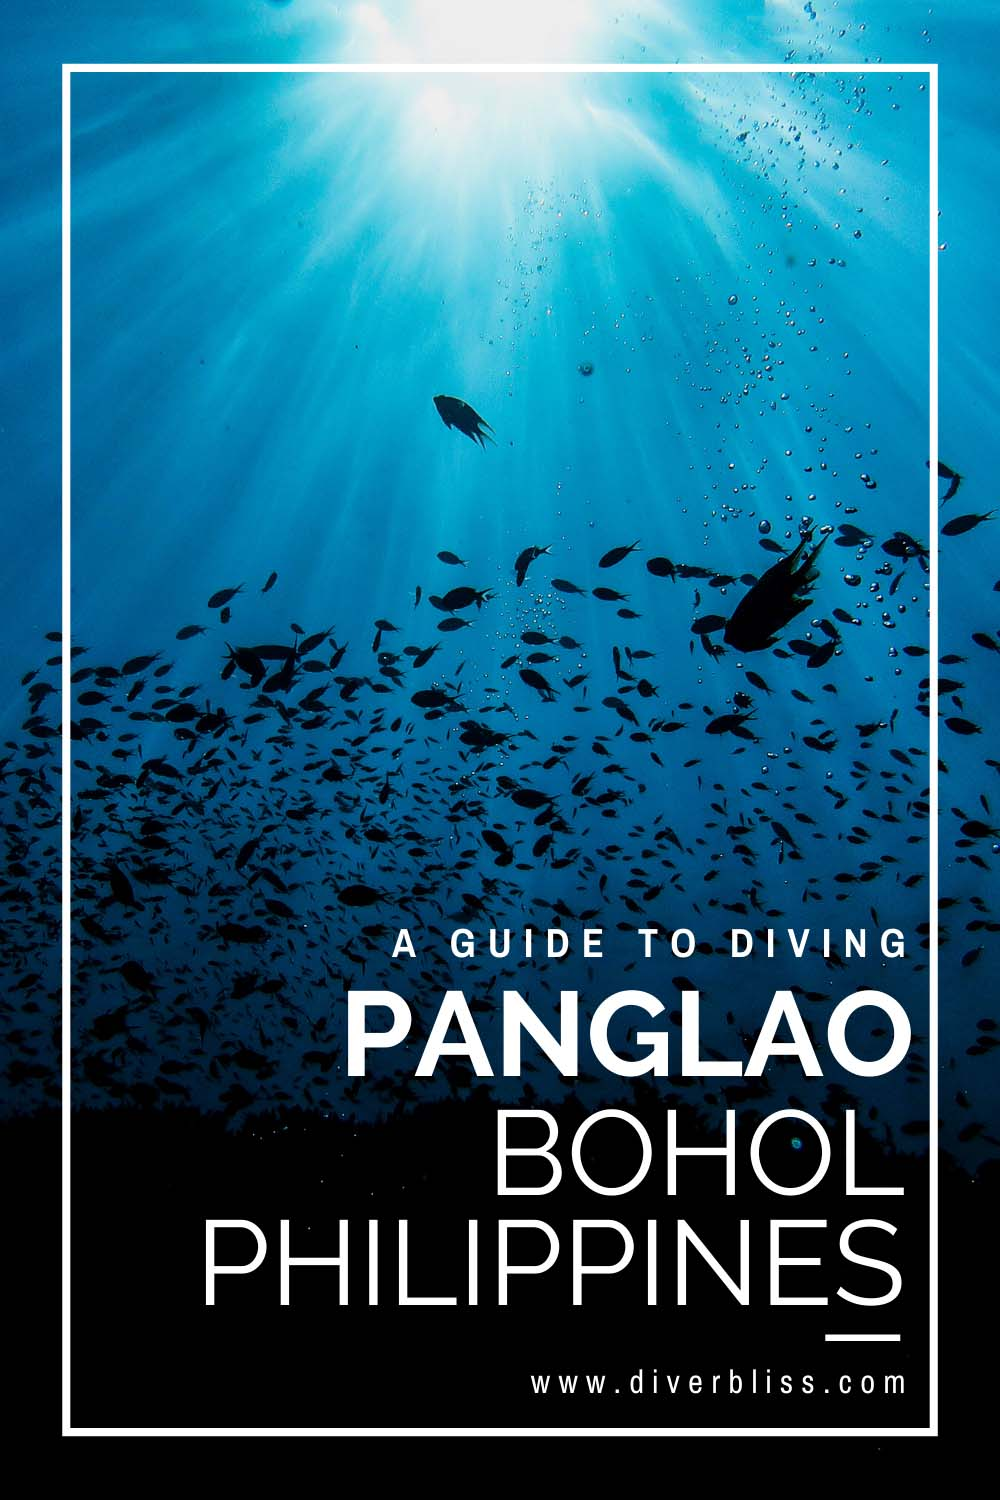 A guide to diving Panglao Bohol Philippines